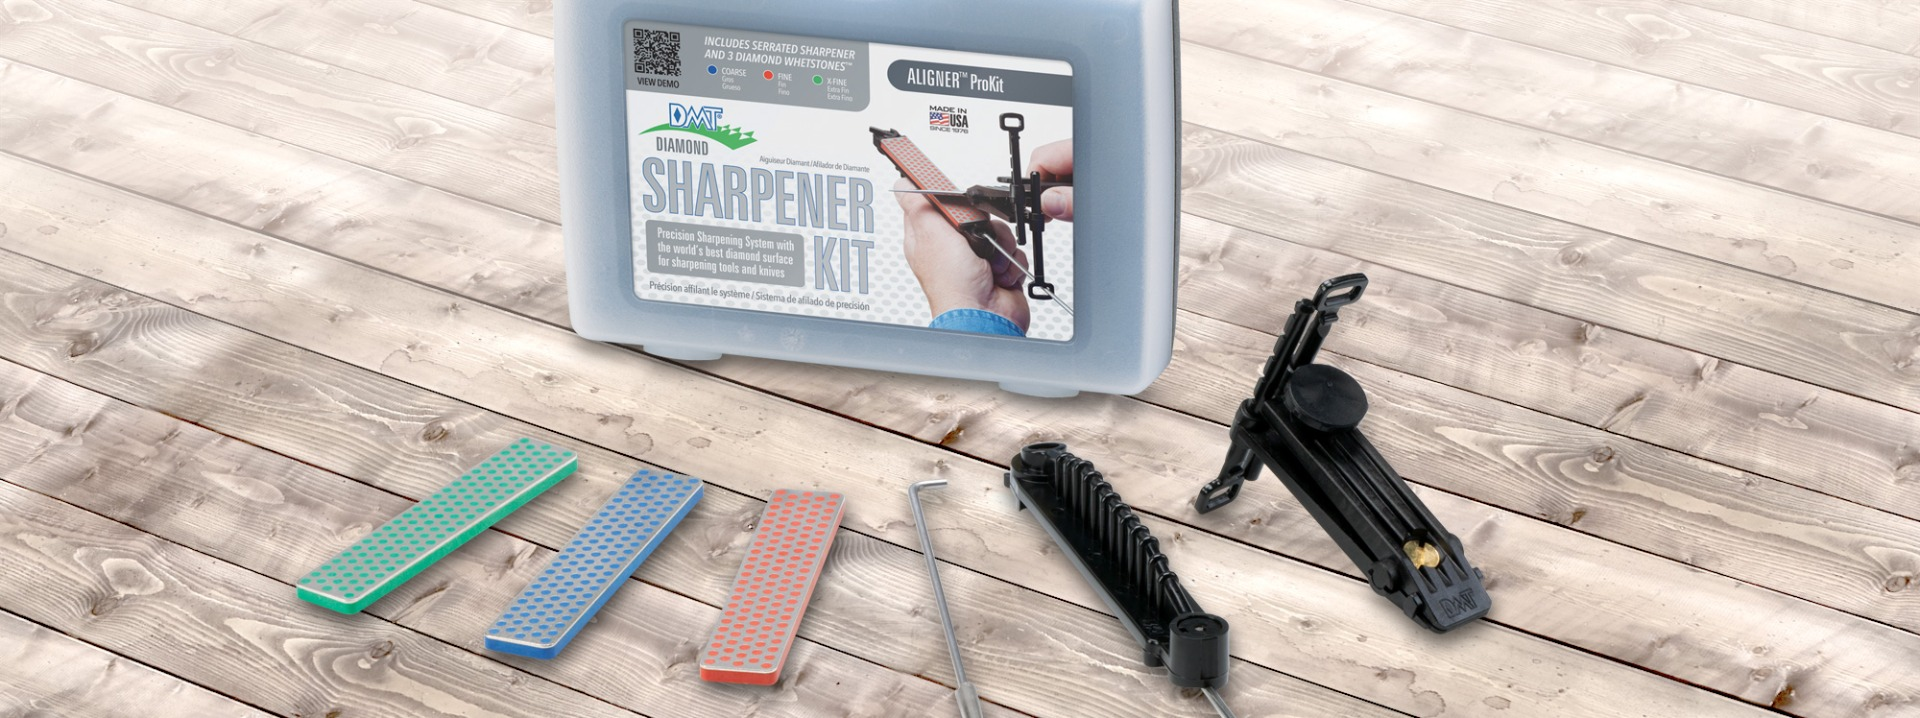 Aligner™ Easy Edge-Guided Knife Sharpening Kit